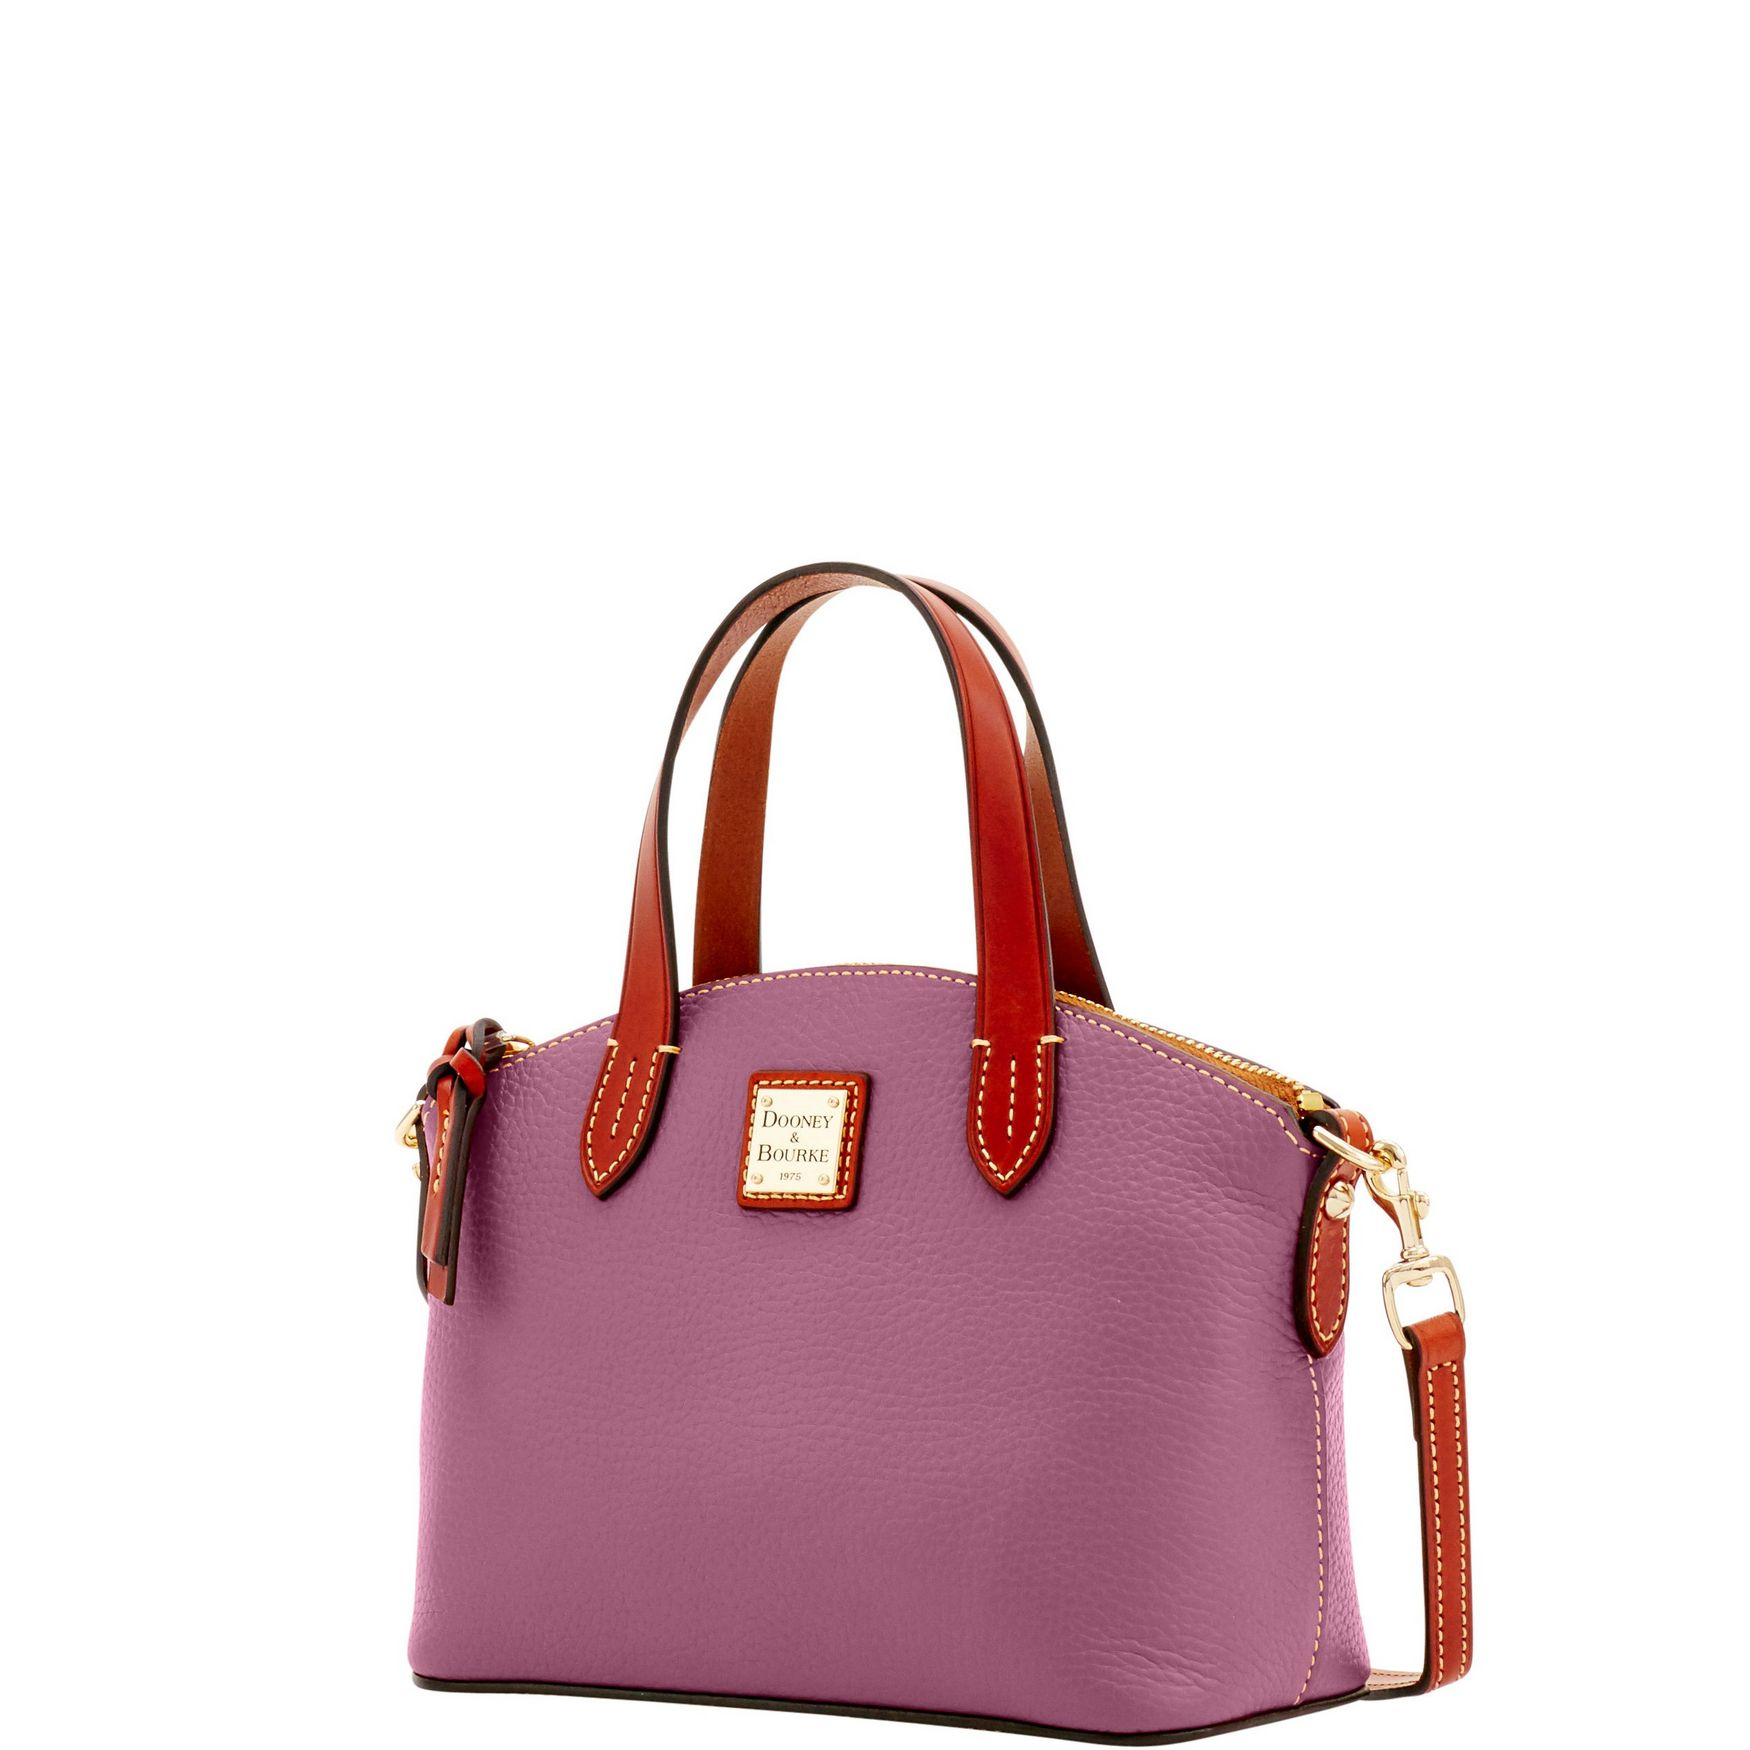 Dooney-amp-Bourke-Pebble-Grain-Ruby-Top-Handle-Bag thumbnail 23